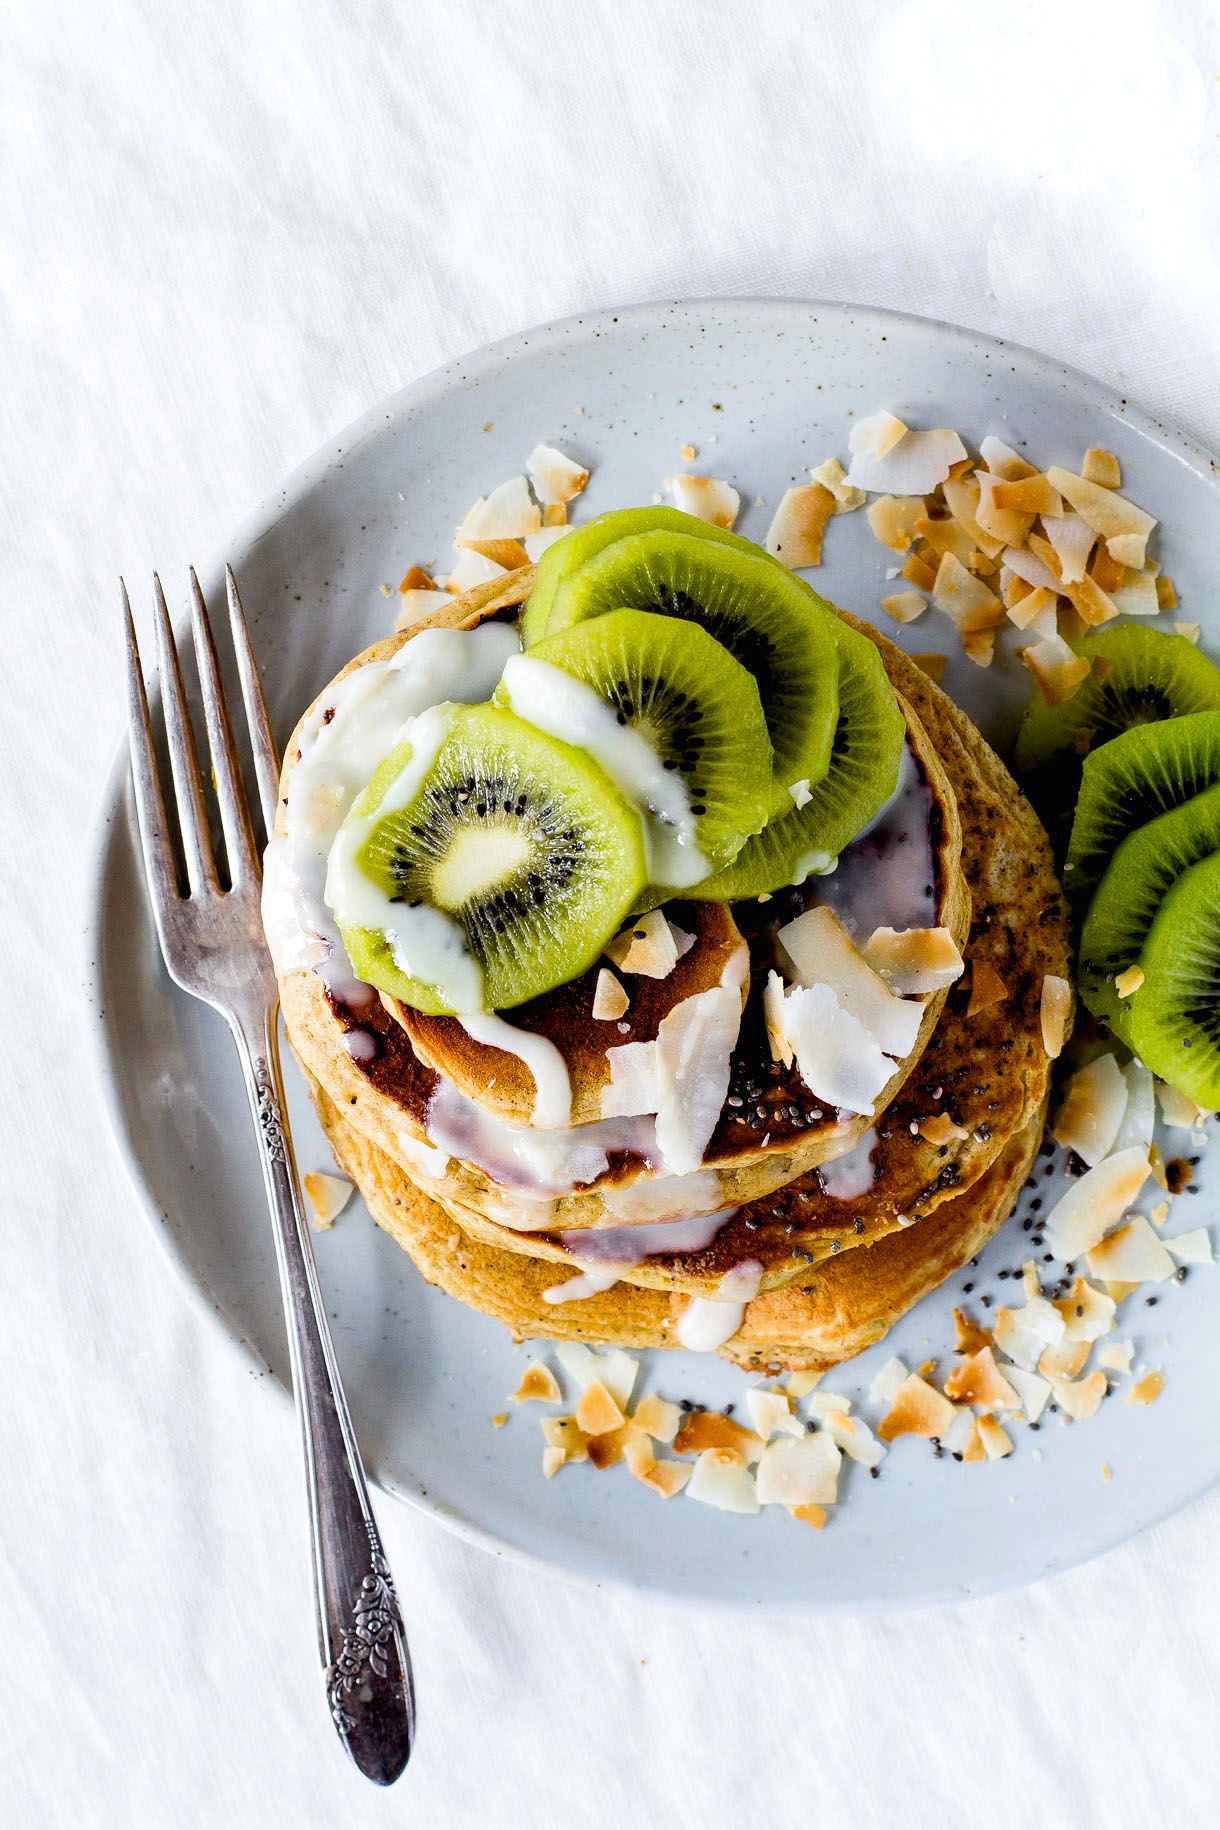 Fluffy Gluten-Free Pancakes with Coconut Butter & Kiwis (made in the blender) | Heartbeet Kitchen